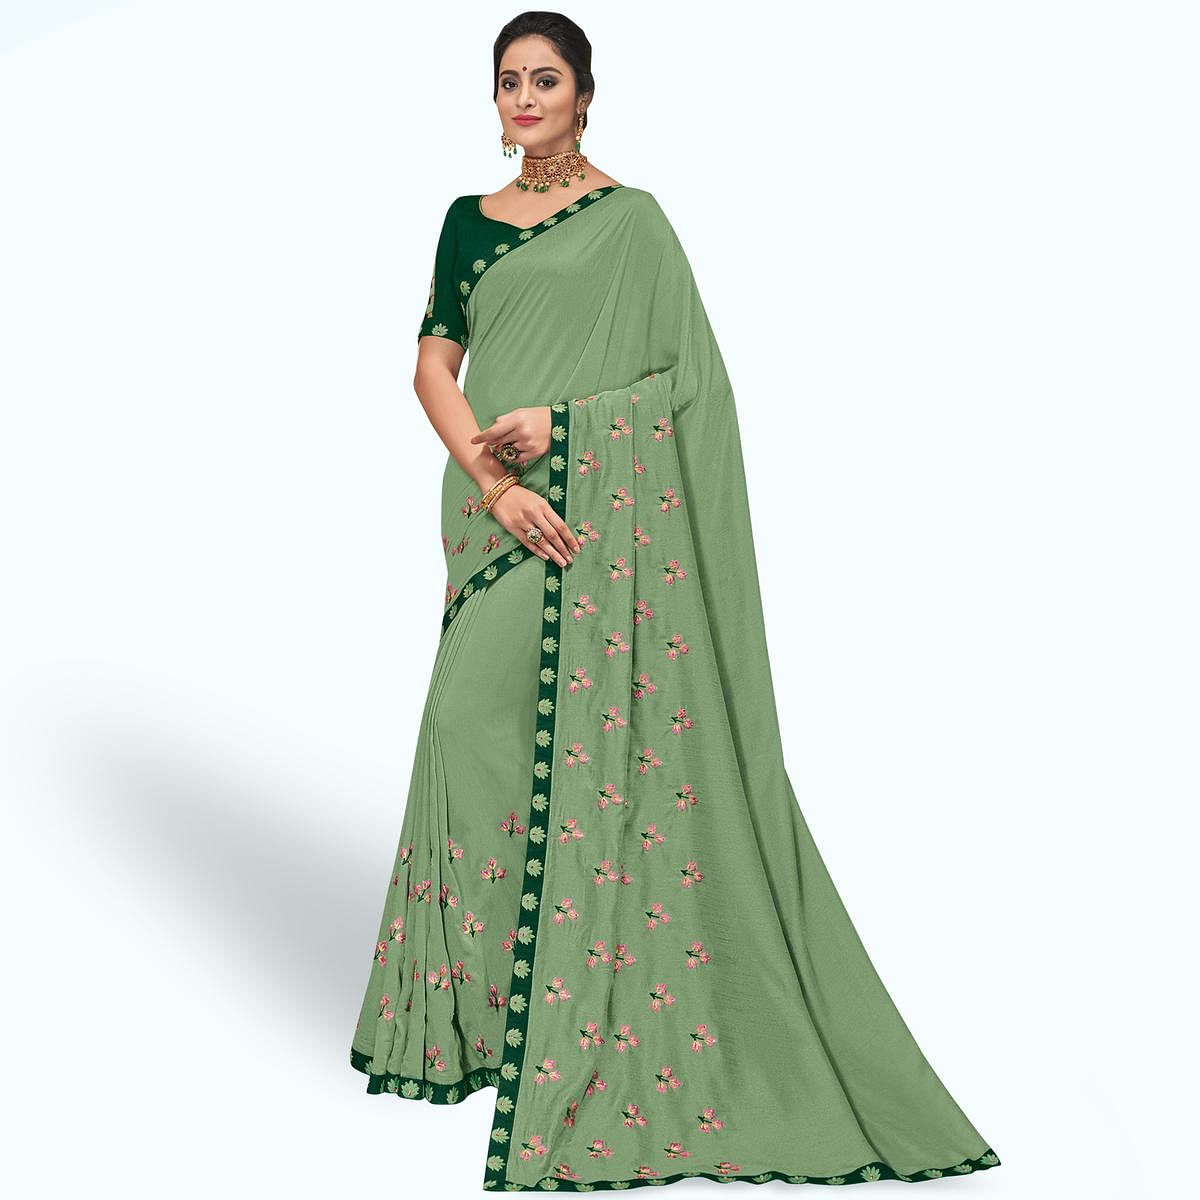 Ravishing Pastel Green Colored Partywear Embroidered Georgette Saree